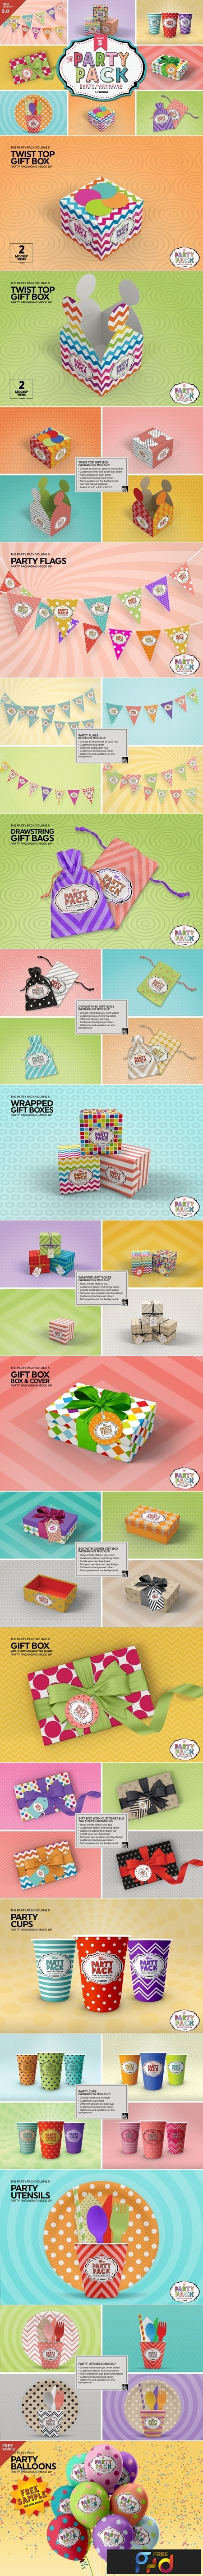 Vol.5 Party Packaging MockUps 3733897 1